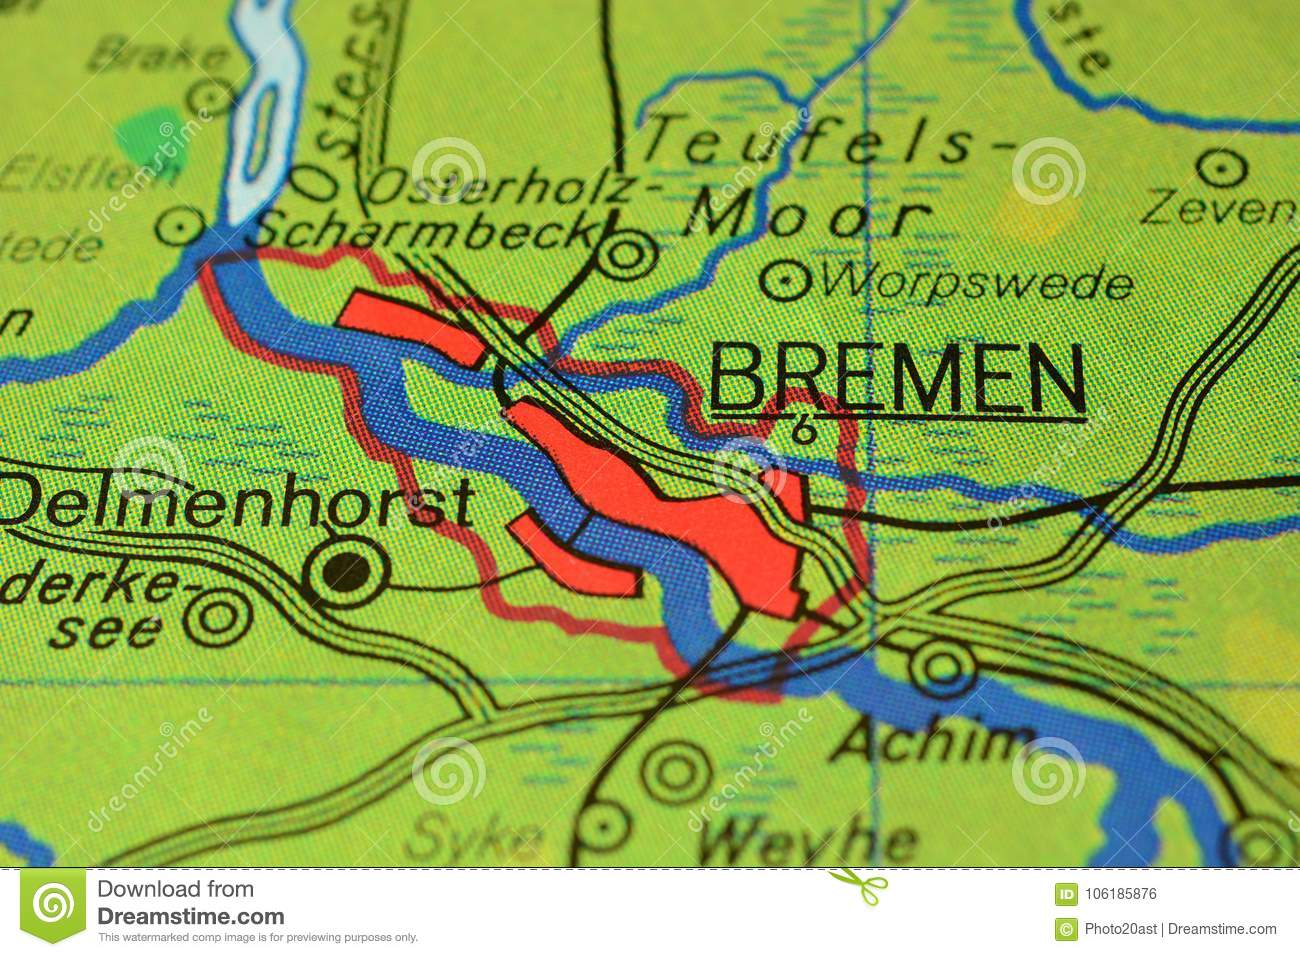 Map Of Bremen Germany.The City Name Bremen N The Map Stock Photo Image Of Cities